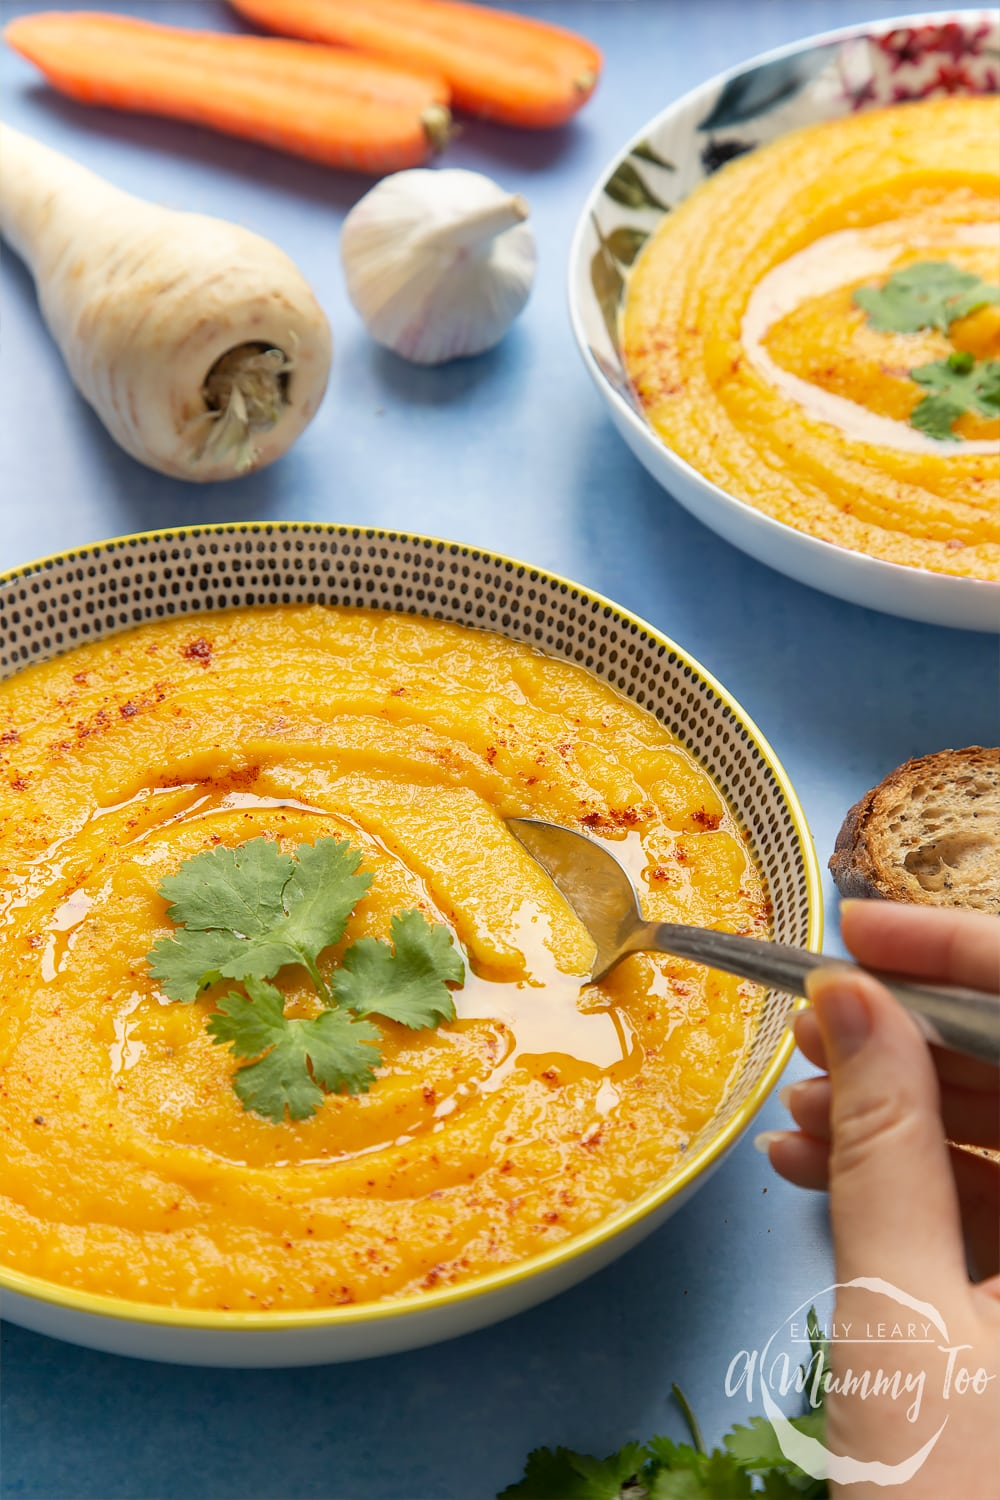 Two bowls of carrot and parsnip soup. A hand holding a spoon is going into one of the bowls. The sides are decorated with ingredients used in the carrot and parsnip soup recipe.